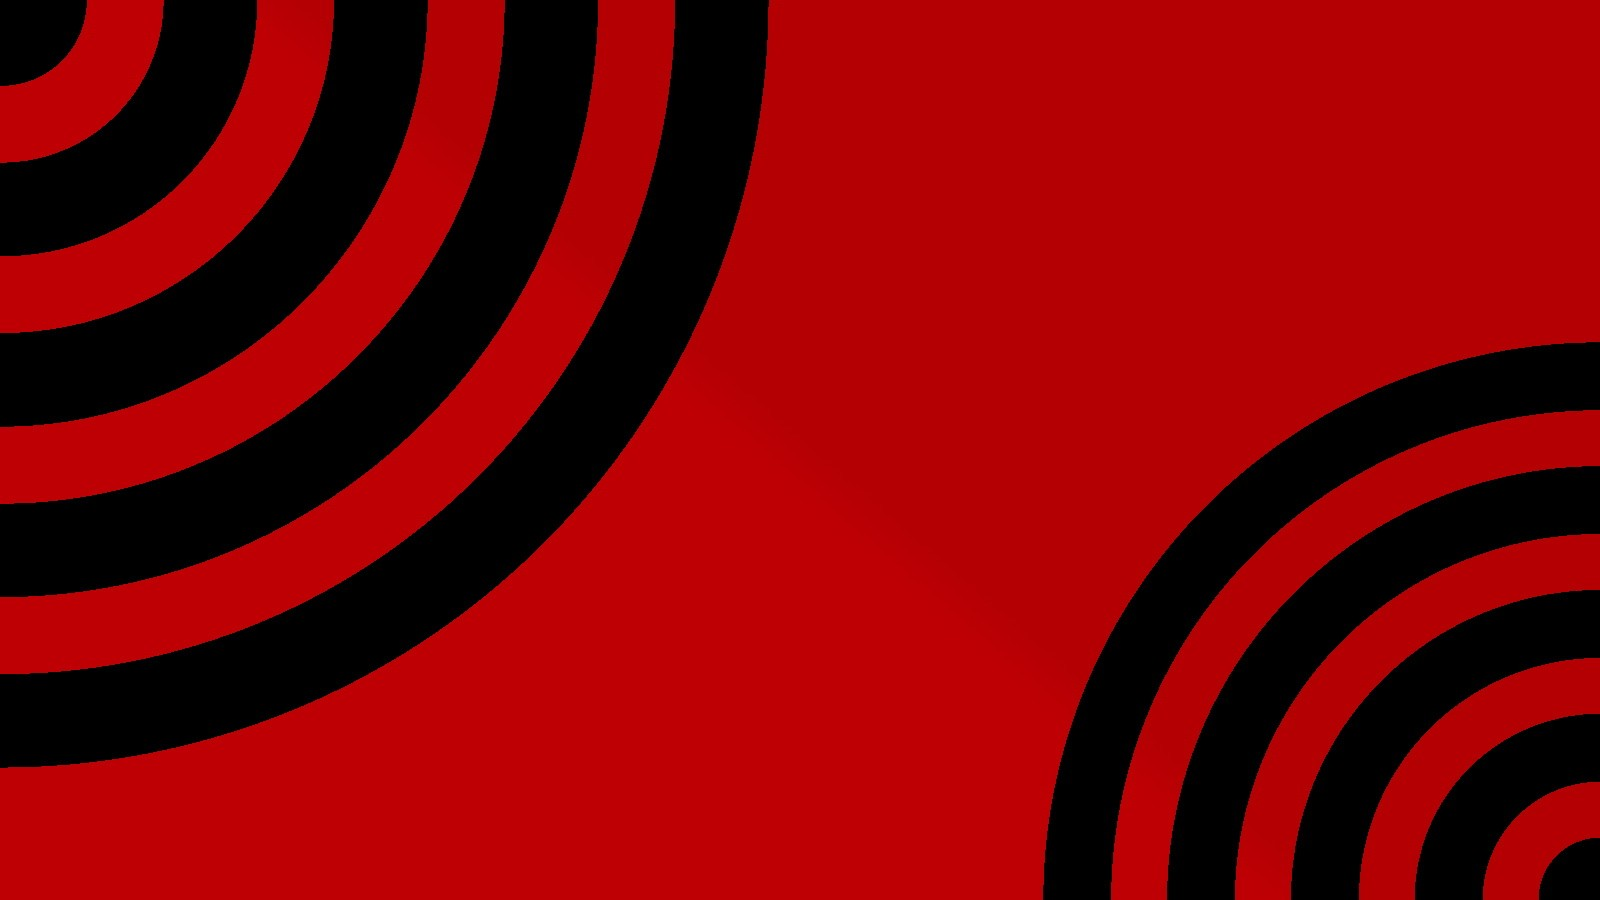 Black Red Waves Circles Psychedelic Simple Background Wallpaper